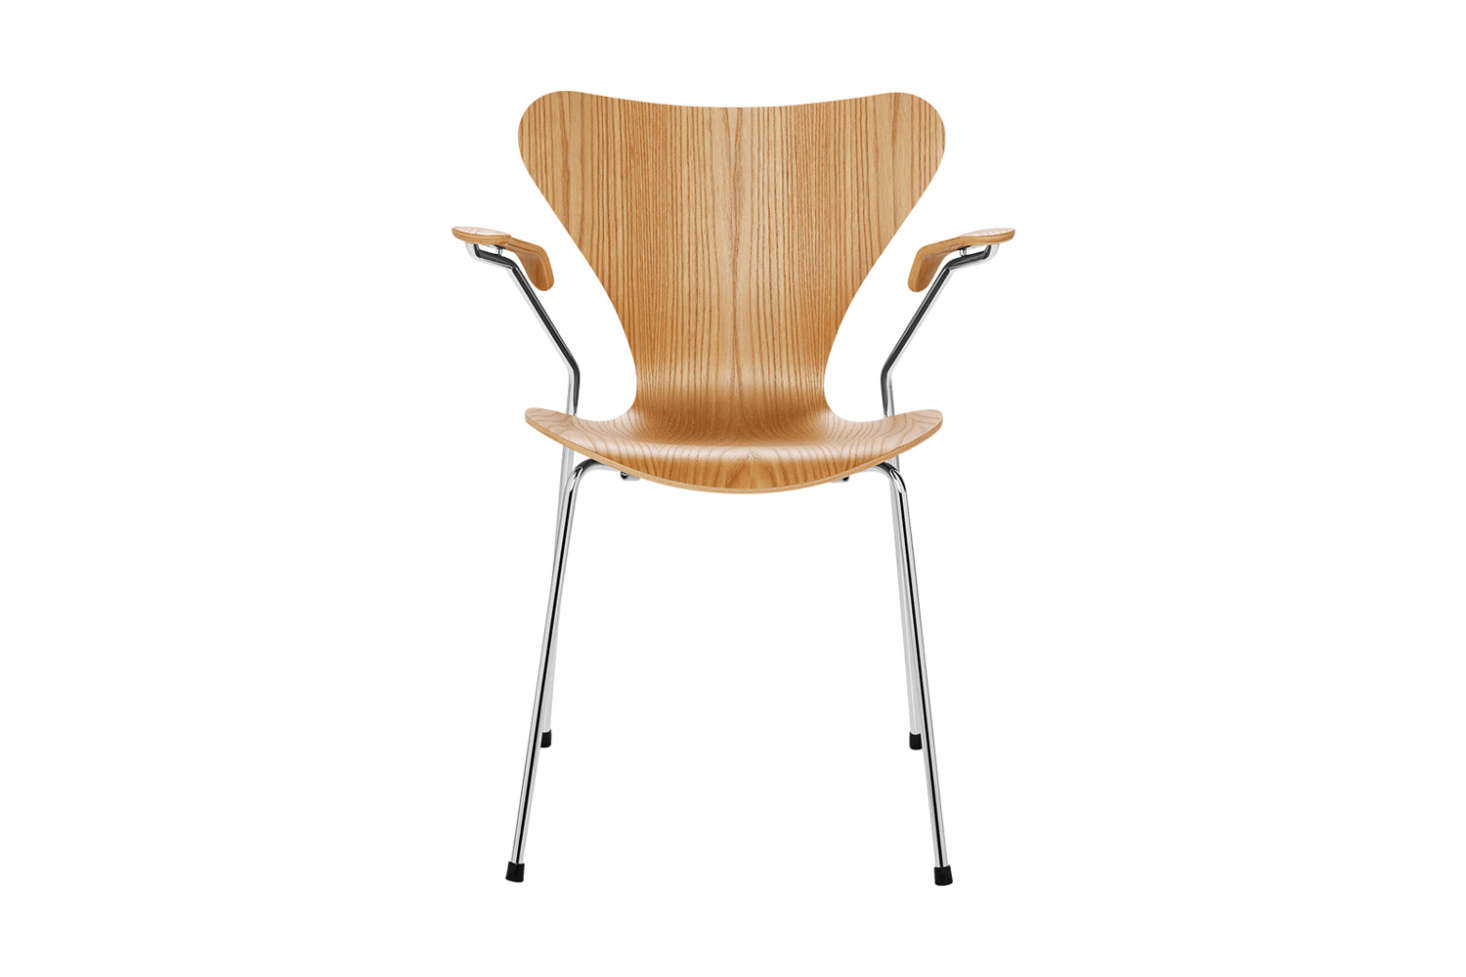 For a new version of the vintage chair, the Arne Jacobsen Series 7 Armchair Wood for Fritz Hansen is $src=